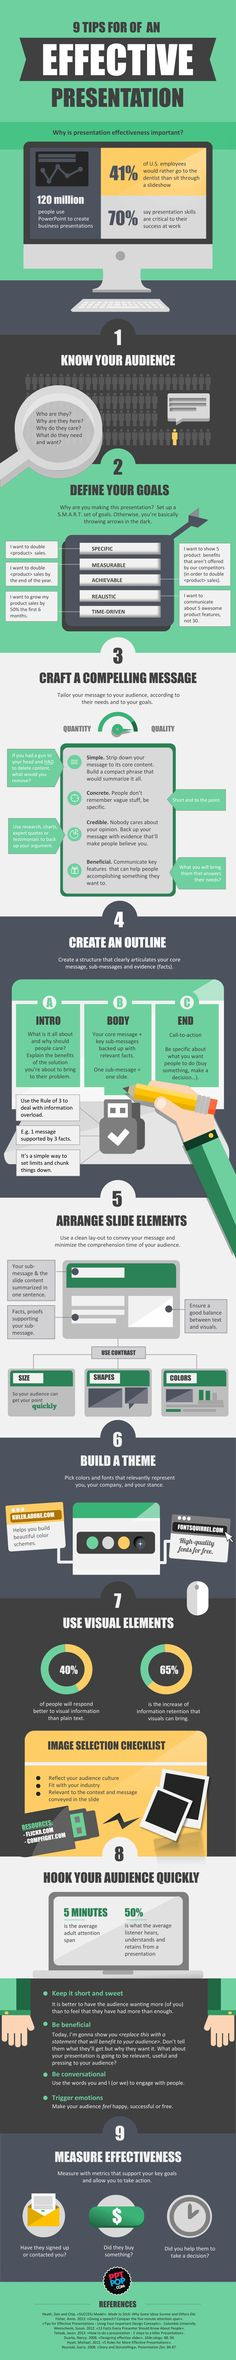 Tips for an effective presentation